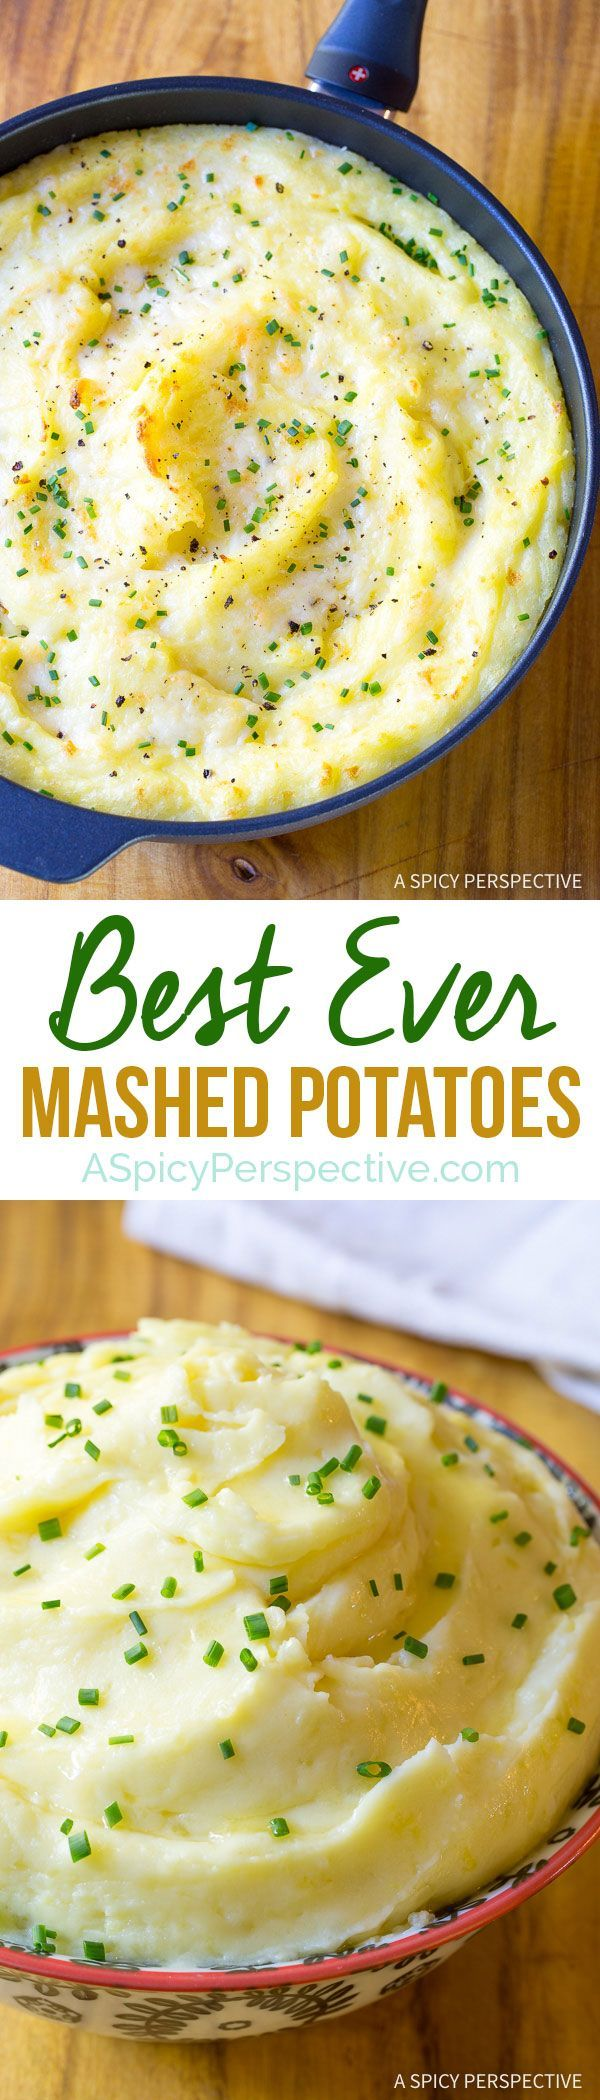 Take a family favorite and make it even better with this mashed potatoes recipe!